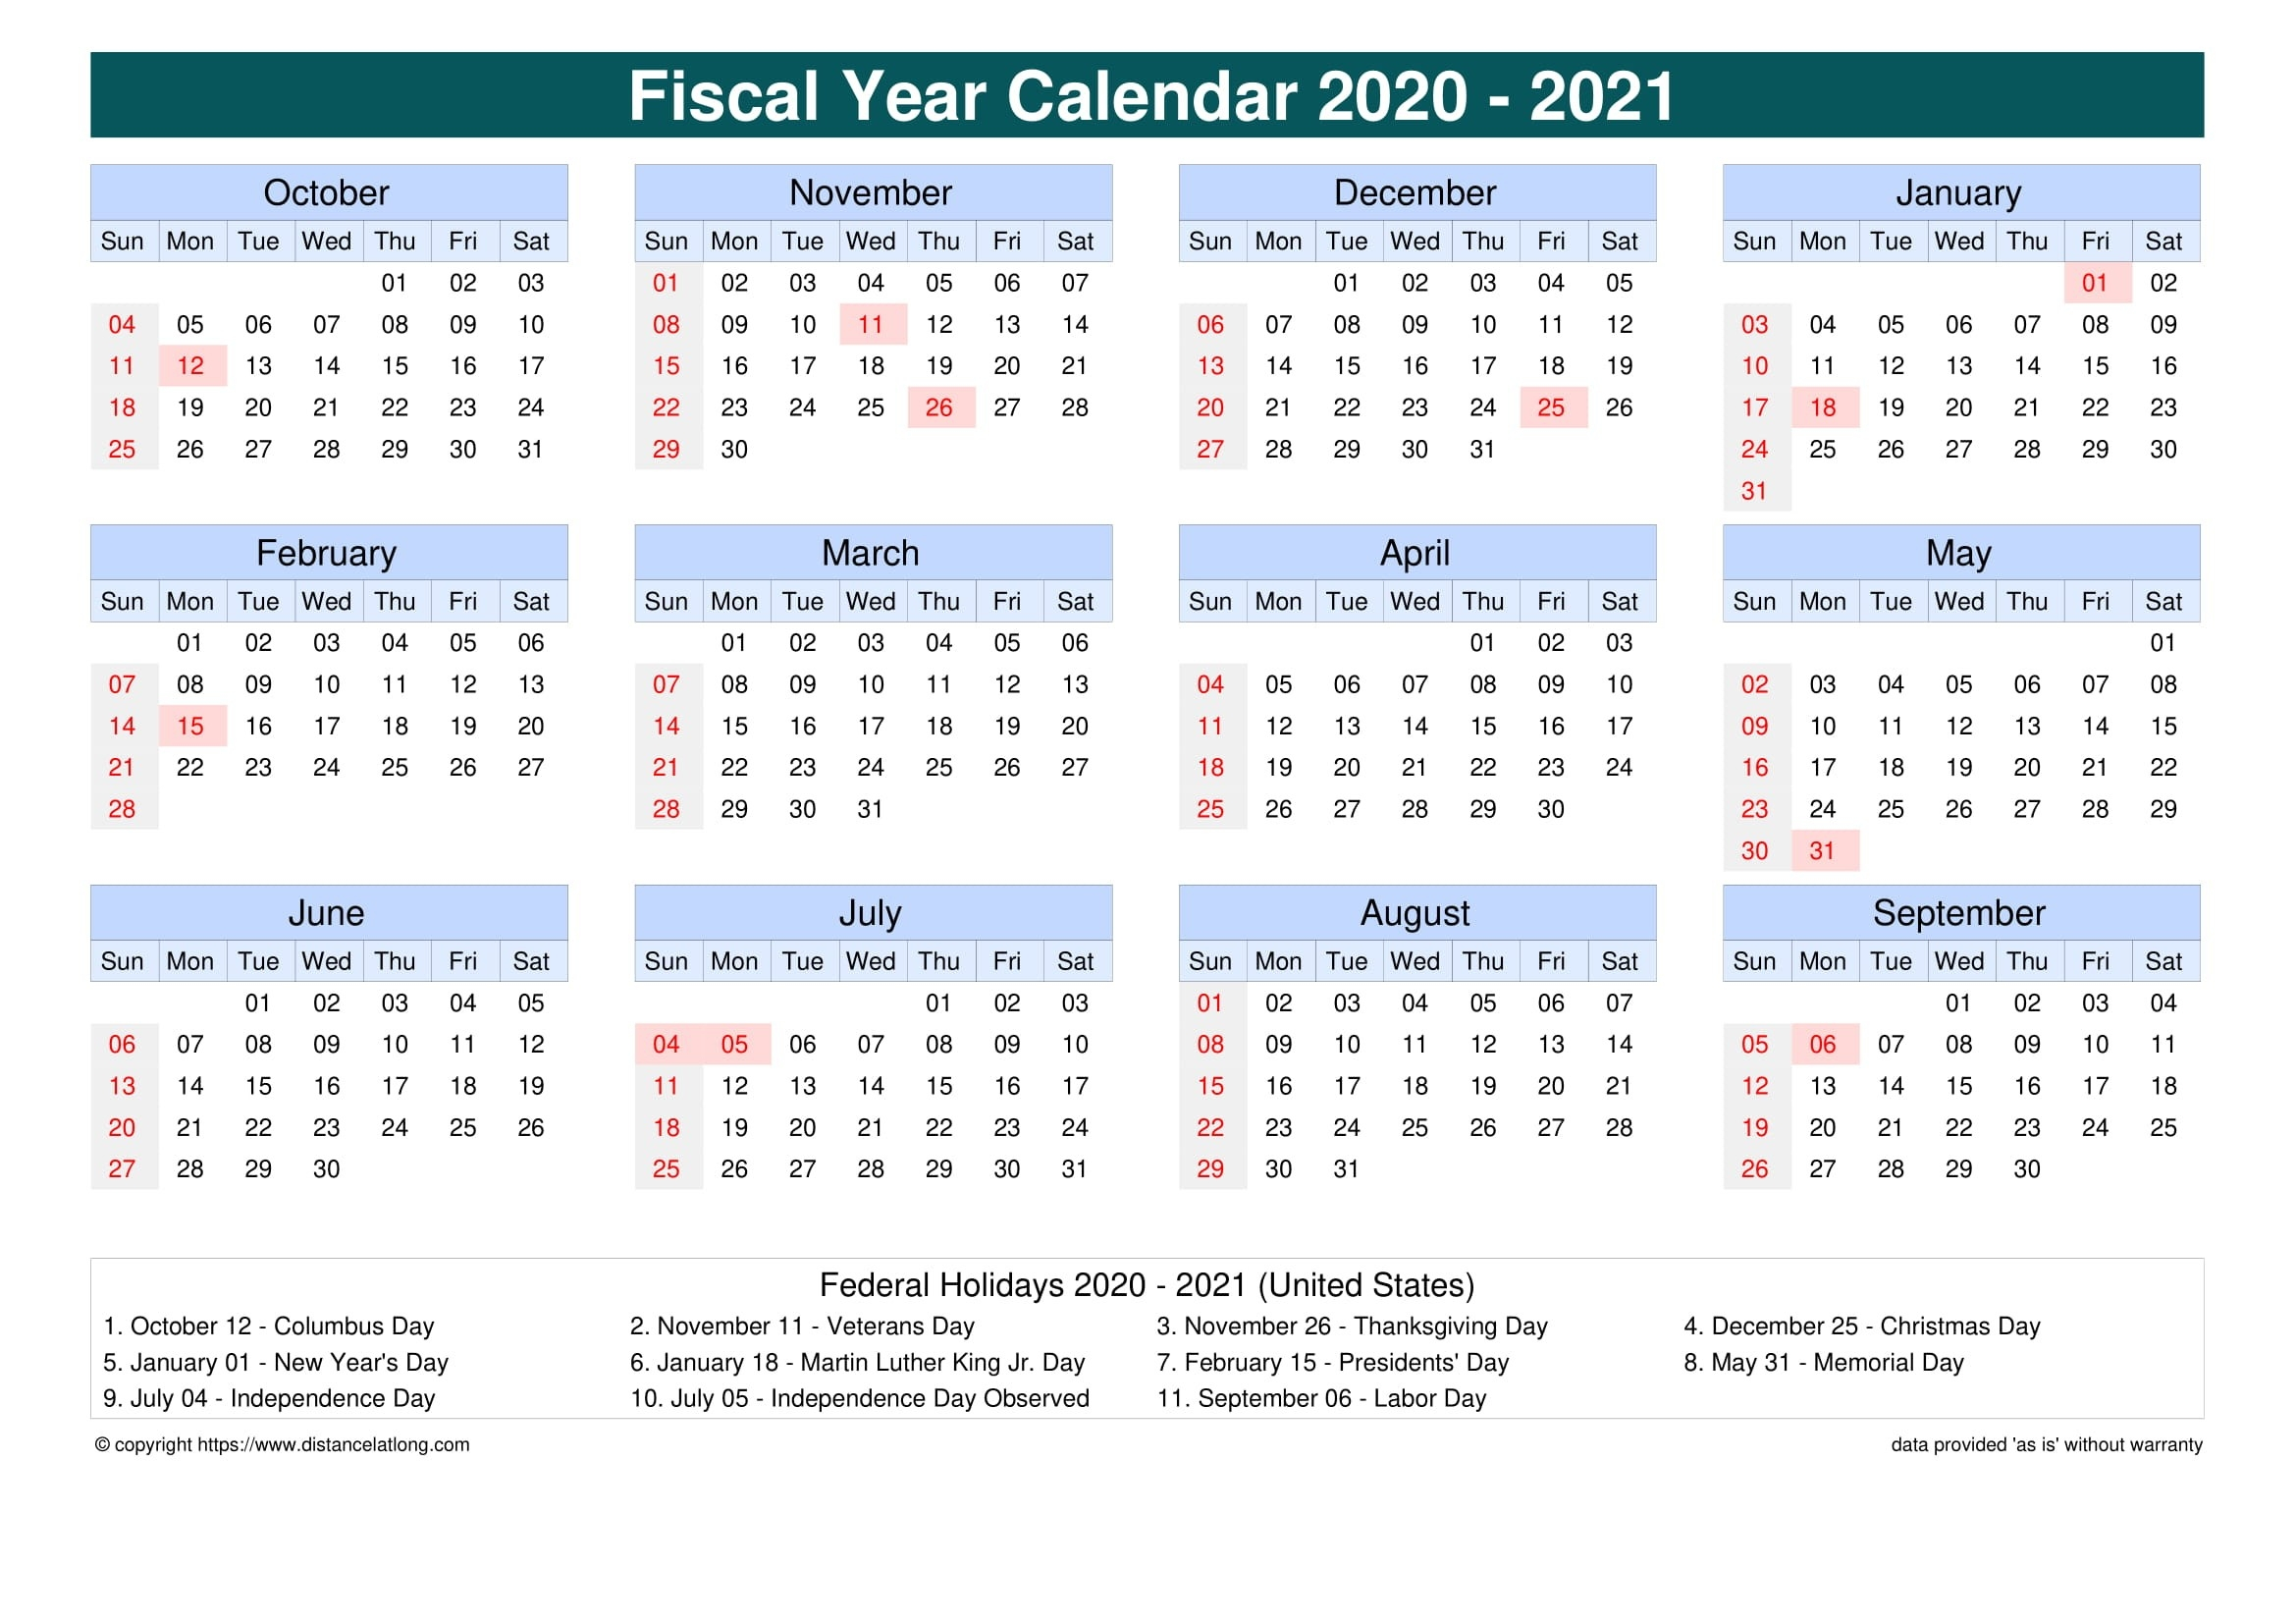 Fiscal Year 2020-2021 Calendar Templates, Free Printable  Financial Year 2021